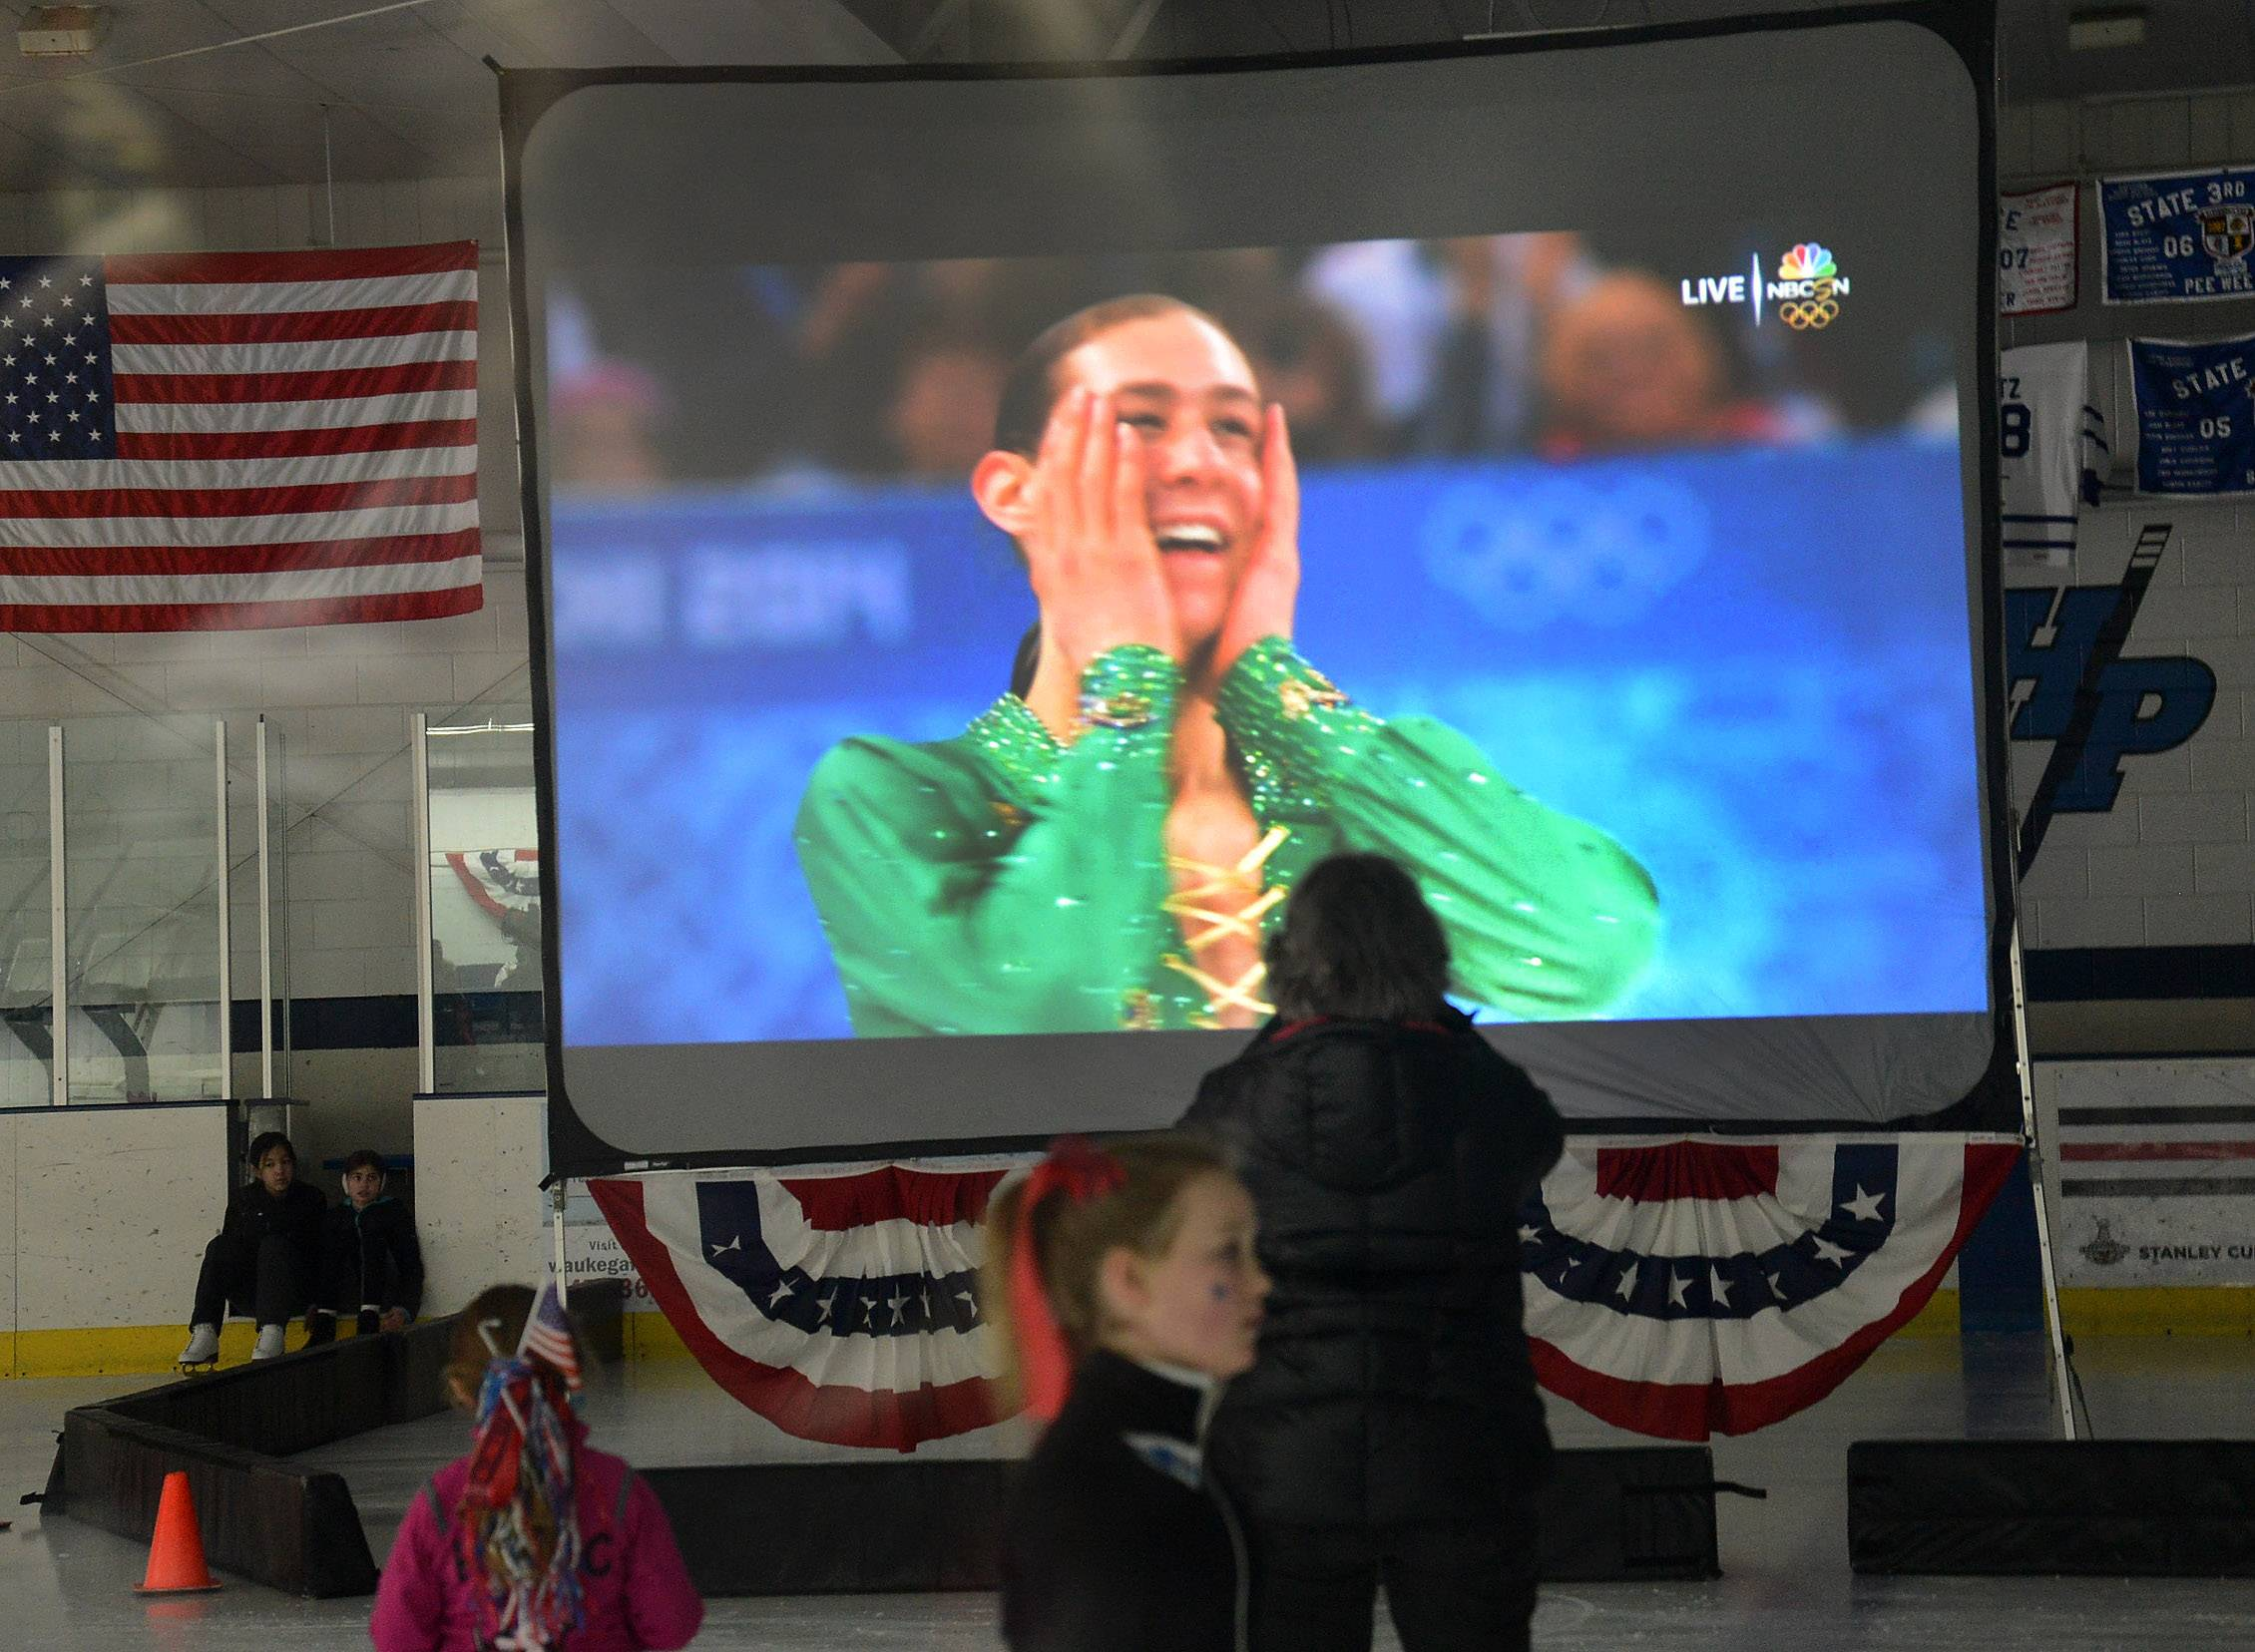 Olympic figure skater Jason Brown of Highland Park's final skate broadcast on the big screen at the Centennial Ice Arena during a viewing party Friday.